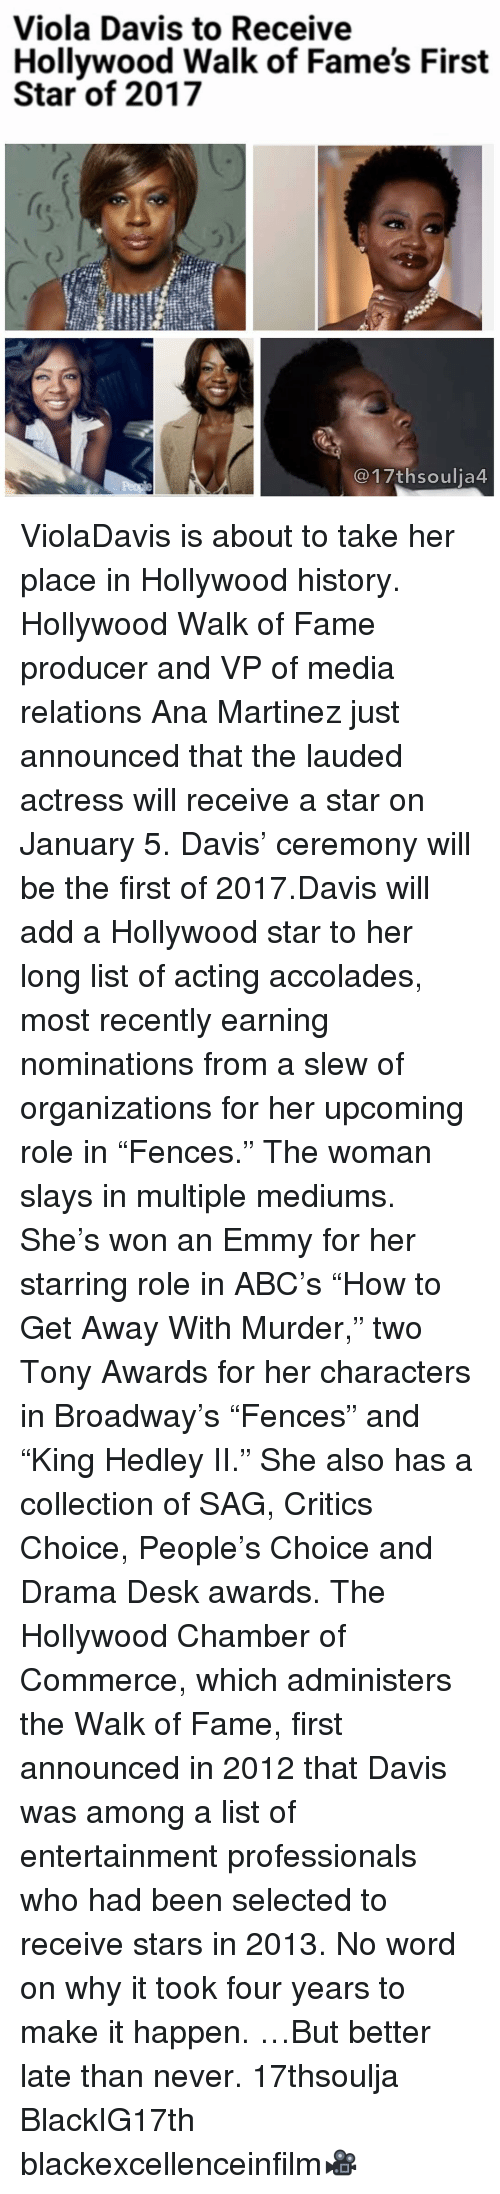 """accolades: Viola Davis to Receive  Hollywood Walk of Fame's First  Star of 2017  17th soulia4 ViolaDavis is about to take her place in Hollywood history. Hollywood Walk of Fame producer and VP of media relations Ana Martinez just announced that the lauded actress will receive a star on January 5. Davis' ceremony will be the first of 2017.Davis will add a Hollywood star to her long list of acting accolades, most recently earning nominations from a slew of organizations for her upcoming role in """"Fences."""" The woman slays in multiple mediums. She's won an Emmy for her starring role in ABC's """"How to Get Away With Murder,"""" two Tony Awards for her characters in Broadway's """"Fences"""" and """"King Hedley II."""" She also has a collection of SAG, Critics Choice, People's Choice and Drama Desk awards. The Hollywood Chamber of Commerce, which administers the Walk of Fame, first announced in 2012 that Davis was among a list of entertainment professionals who had been selected to receive stars in 2013. No word on why it took four years to make it happen. …But better late than never. 17thsoulja BlackIG17th blackexcellenceinfilm🎥"""